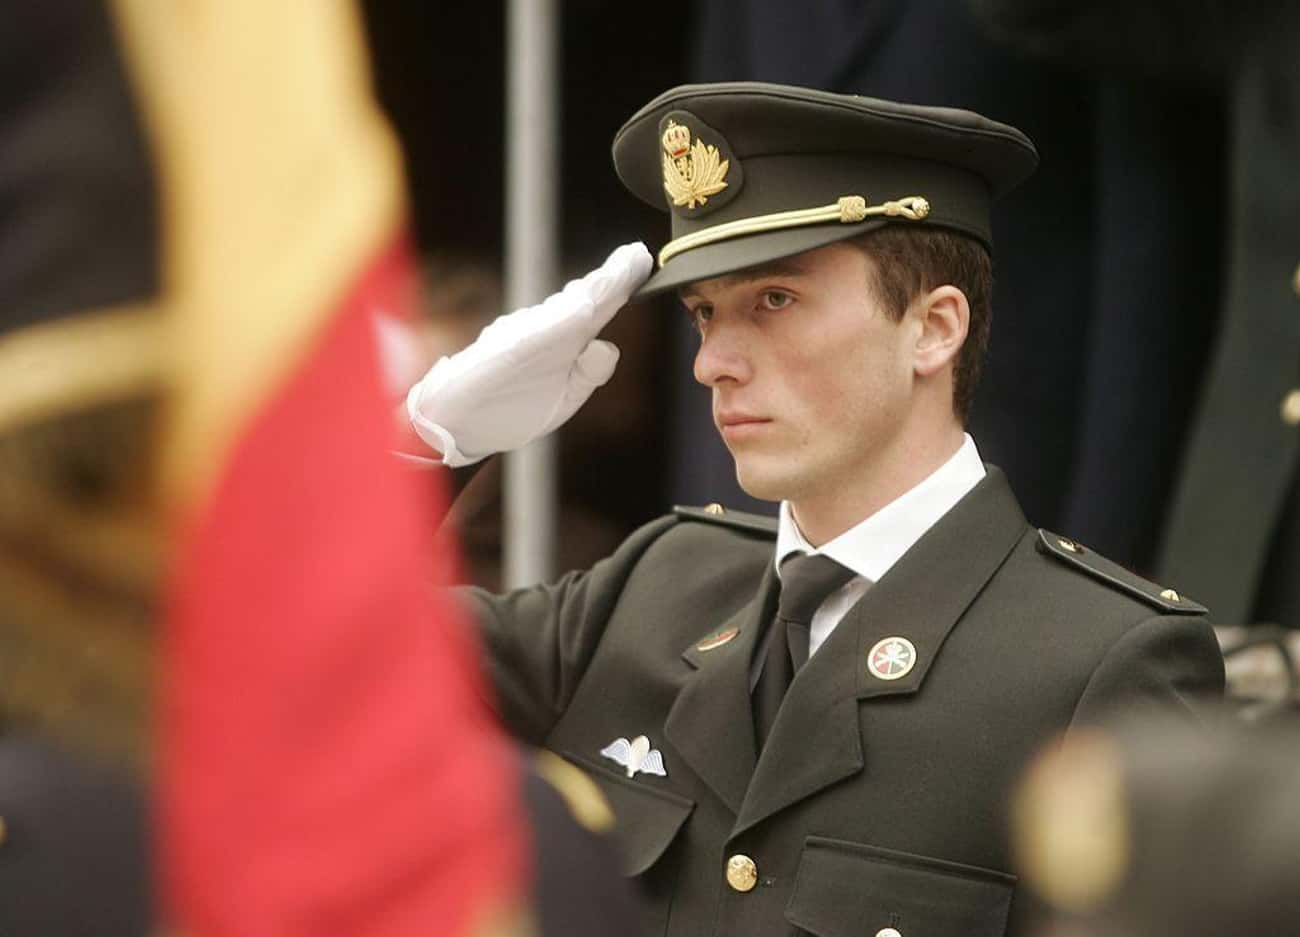 Prince Amedeo of Belgium, Arch is listed (or ranked) 2 on the list The Hottest Royal Men